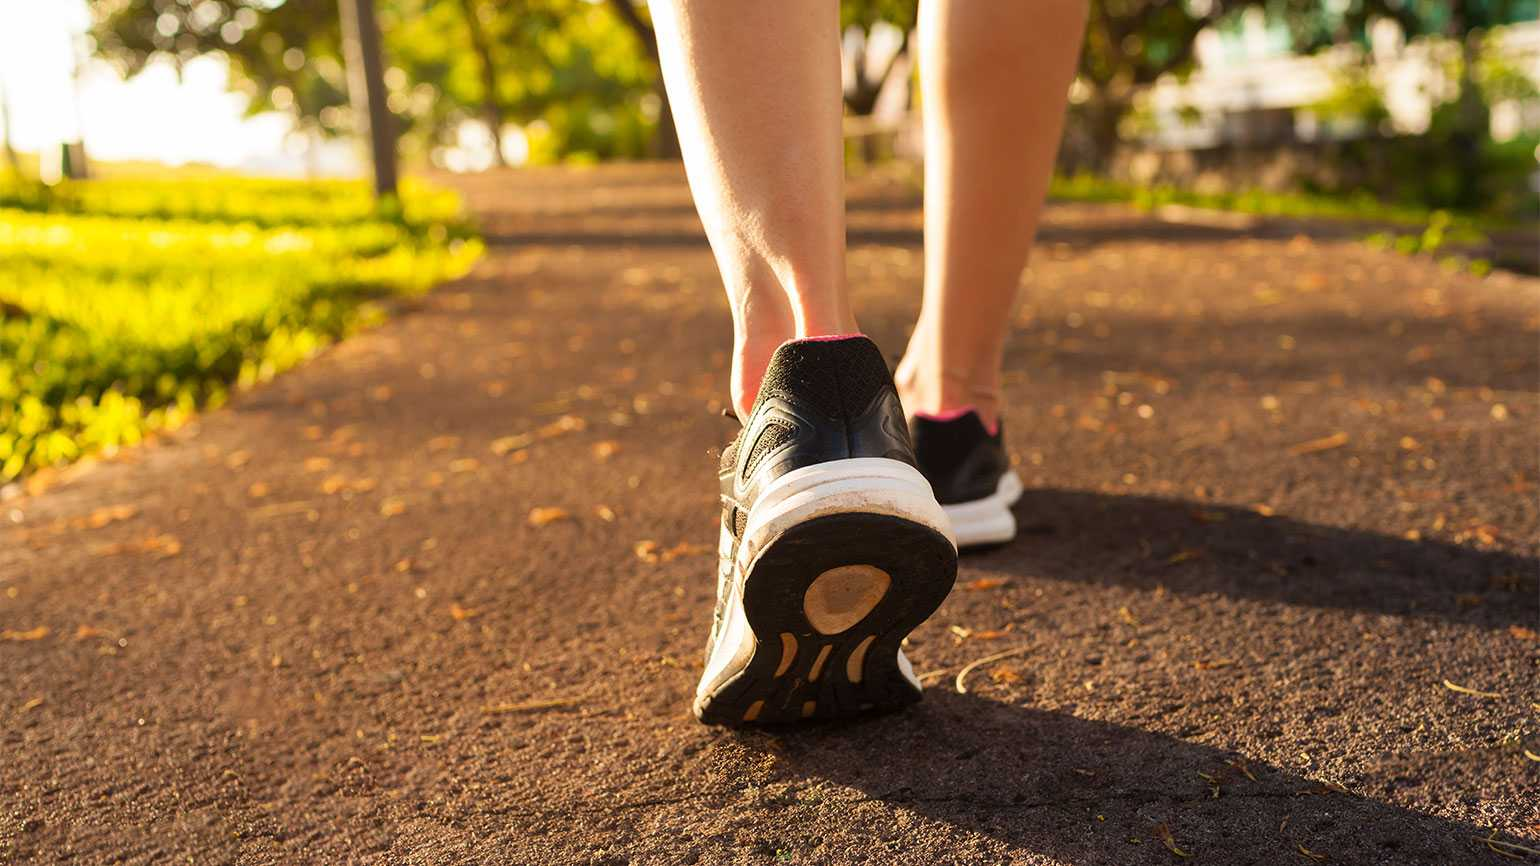 7 Ways to Walk to Well-Being